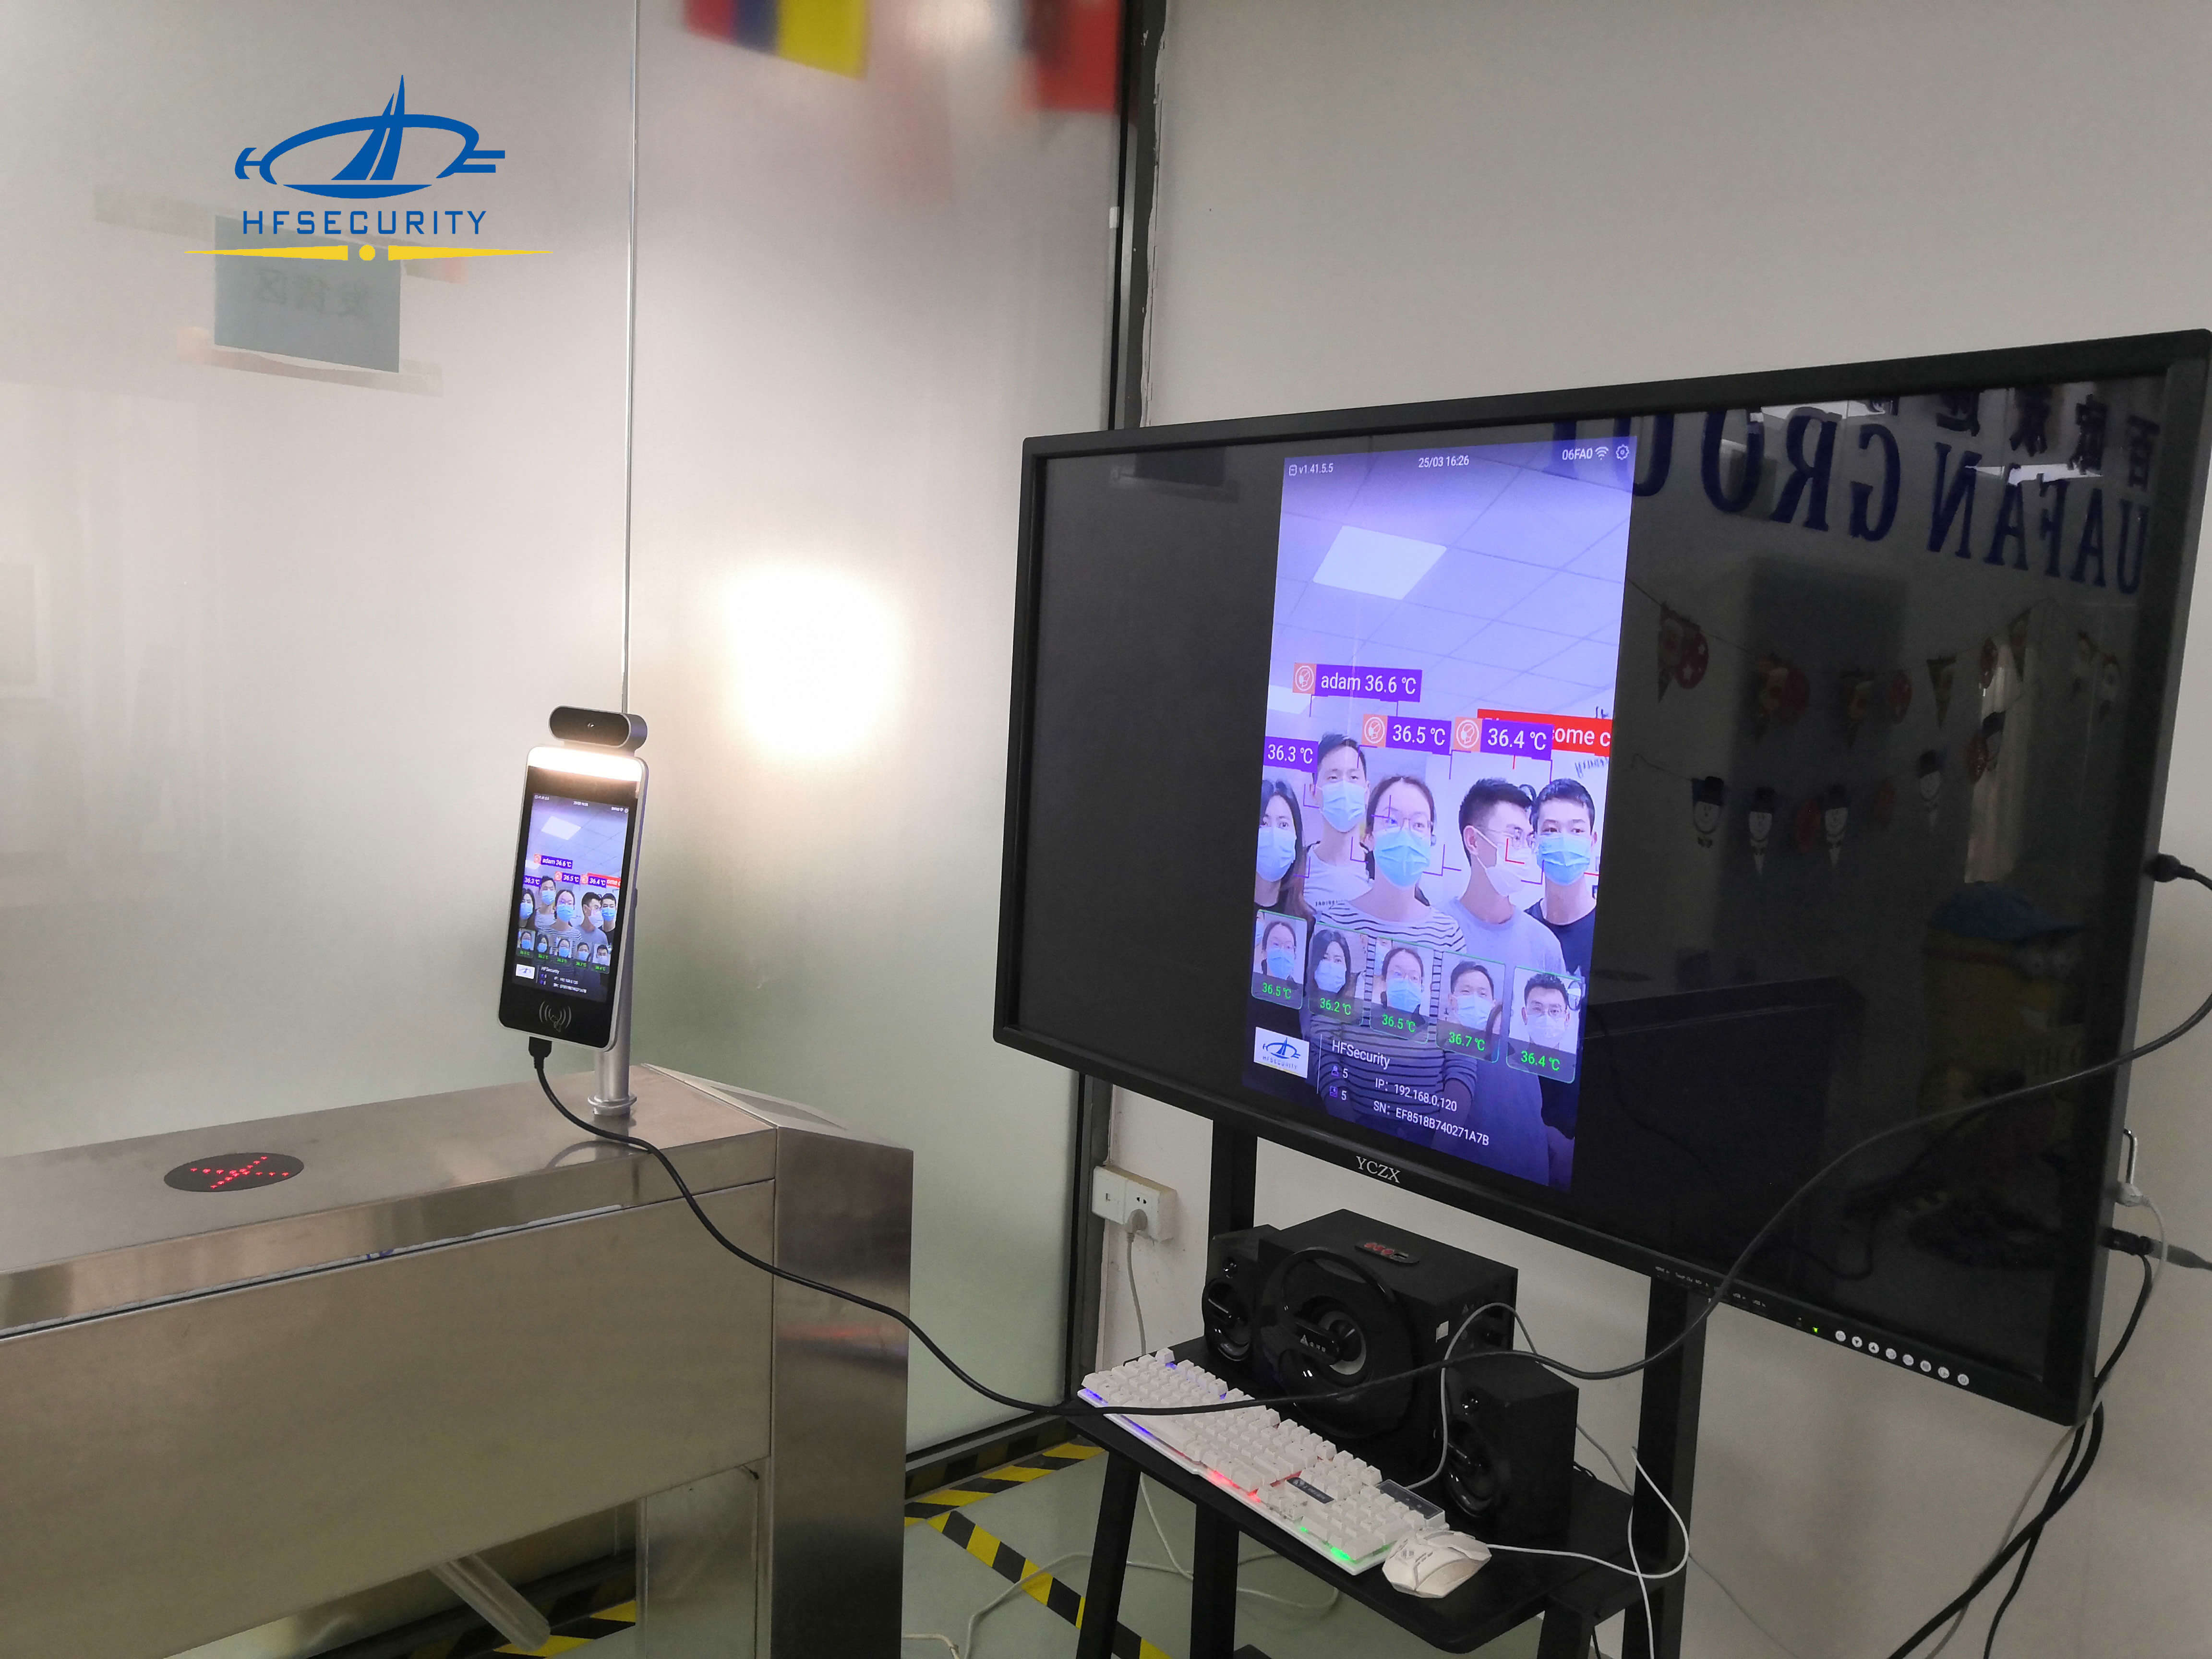 HFSecurity face recognition finalcial application